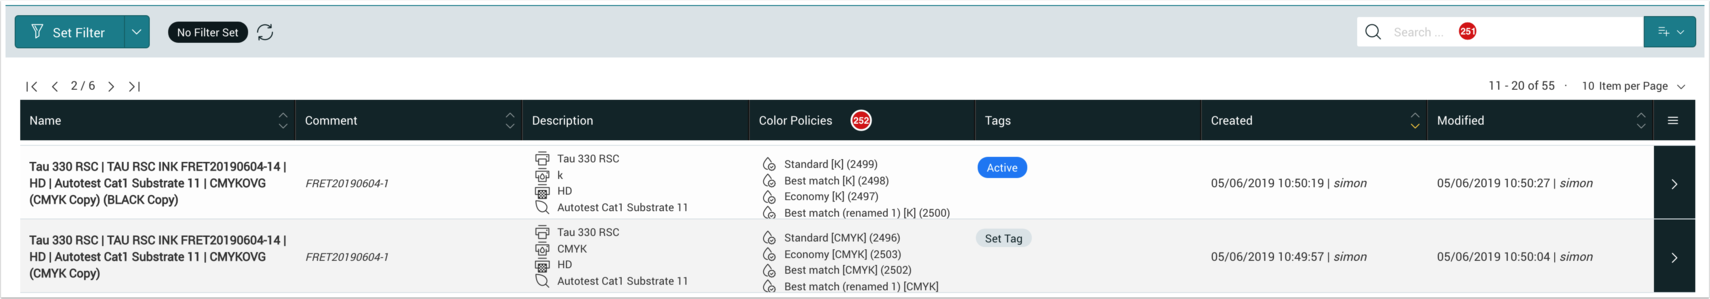 Color Setup - Search by Color Policy - 1.7.5